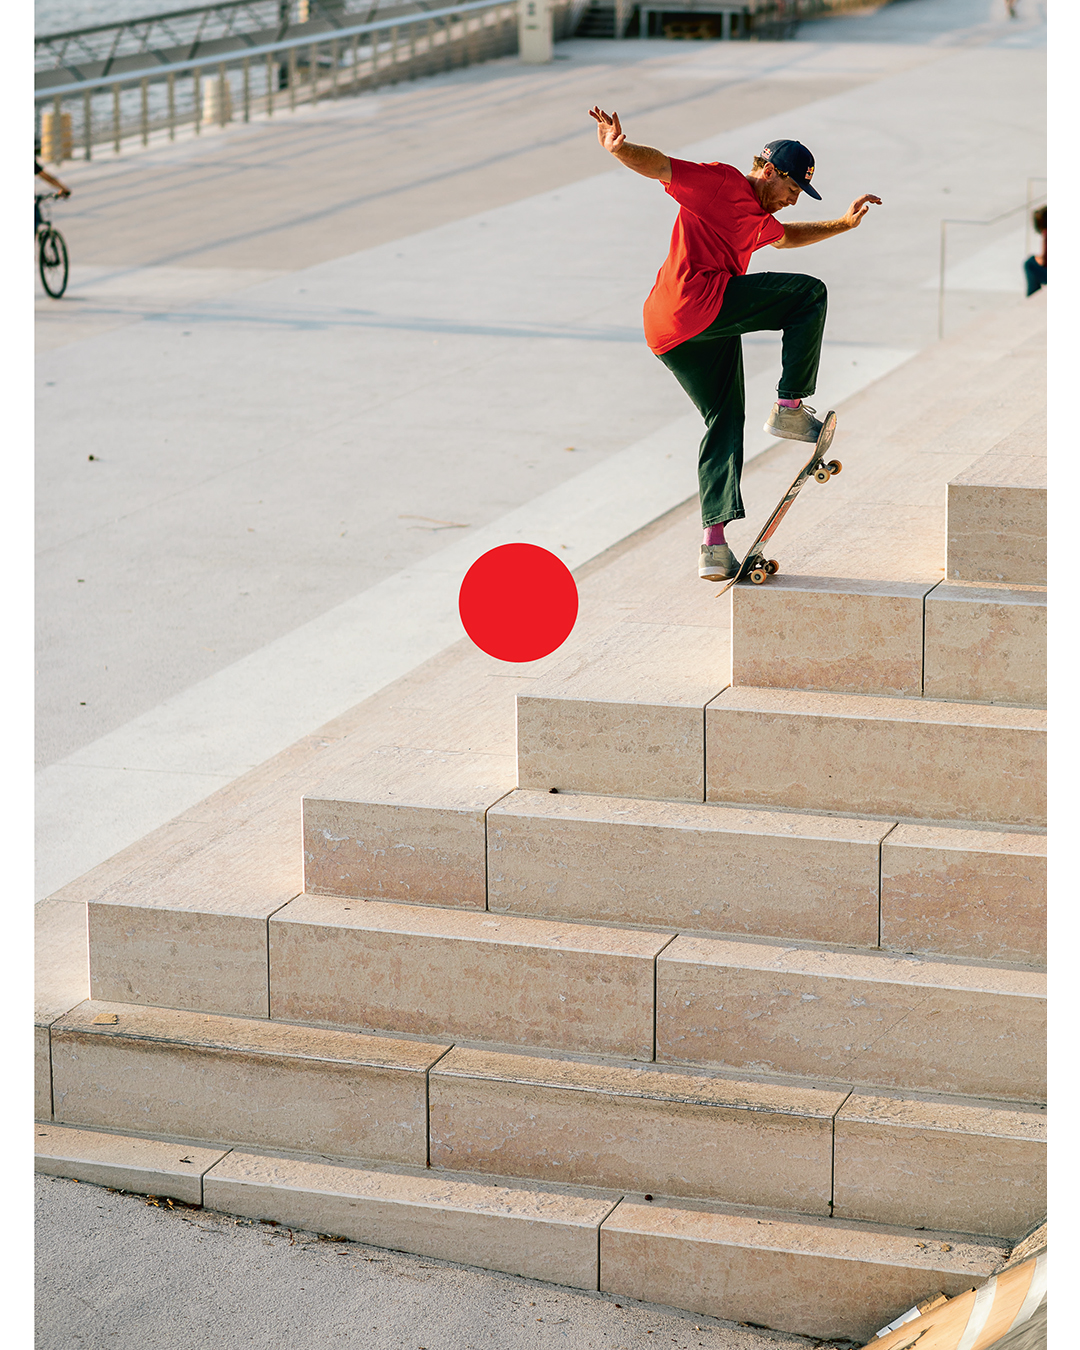 Barney Page. Cover of the Free Mag #21. Photo Clément Le Gall.